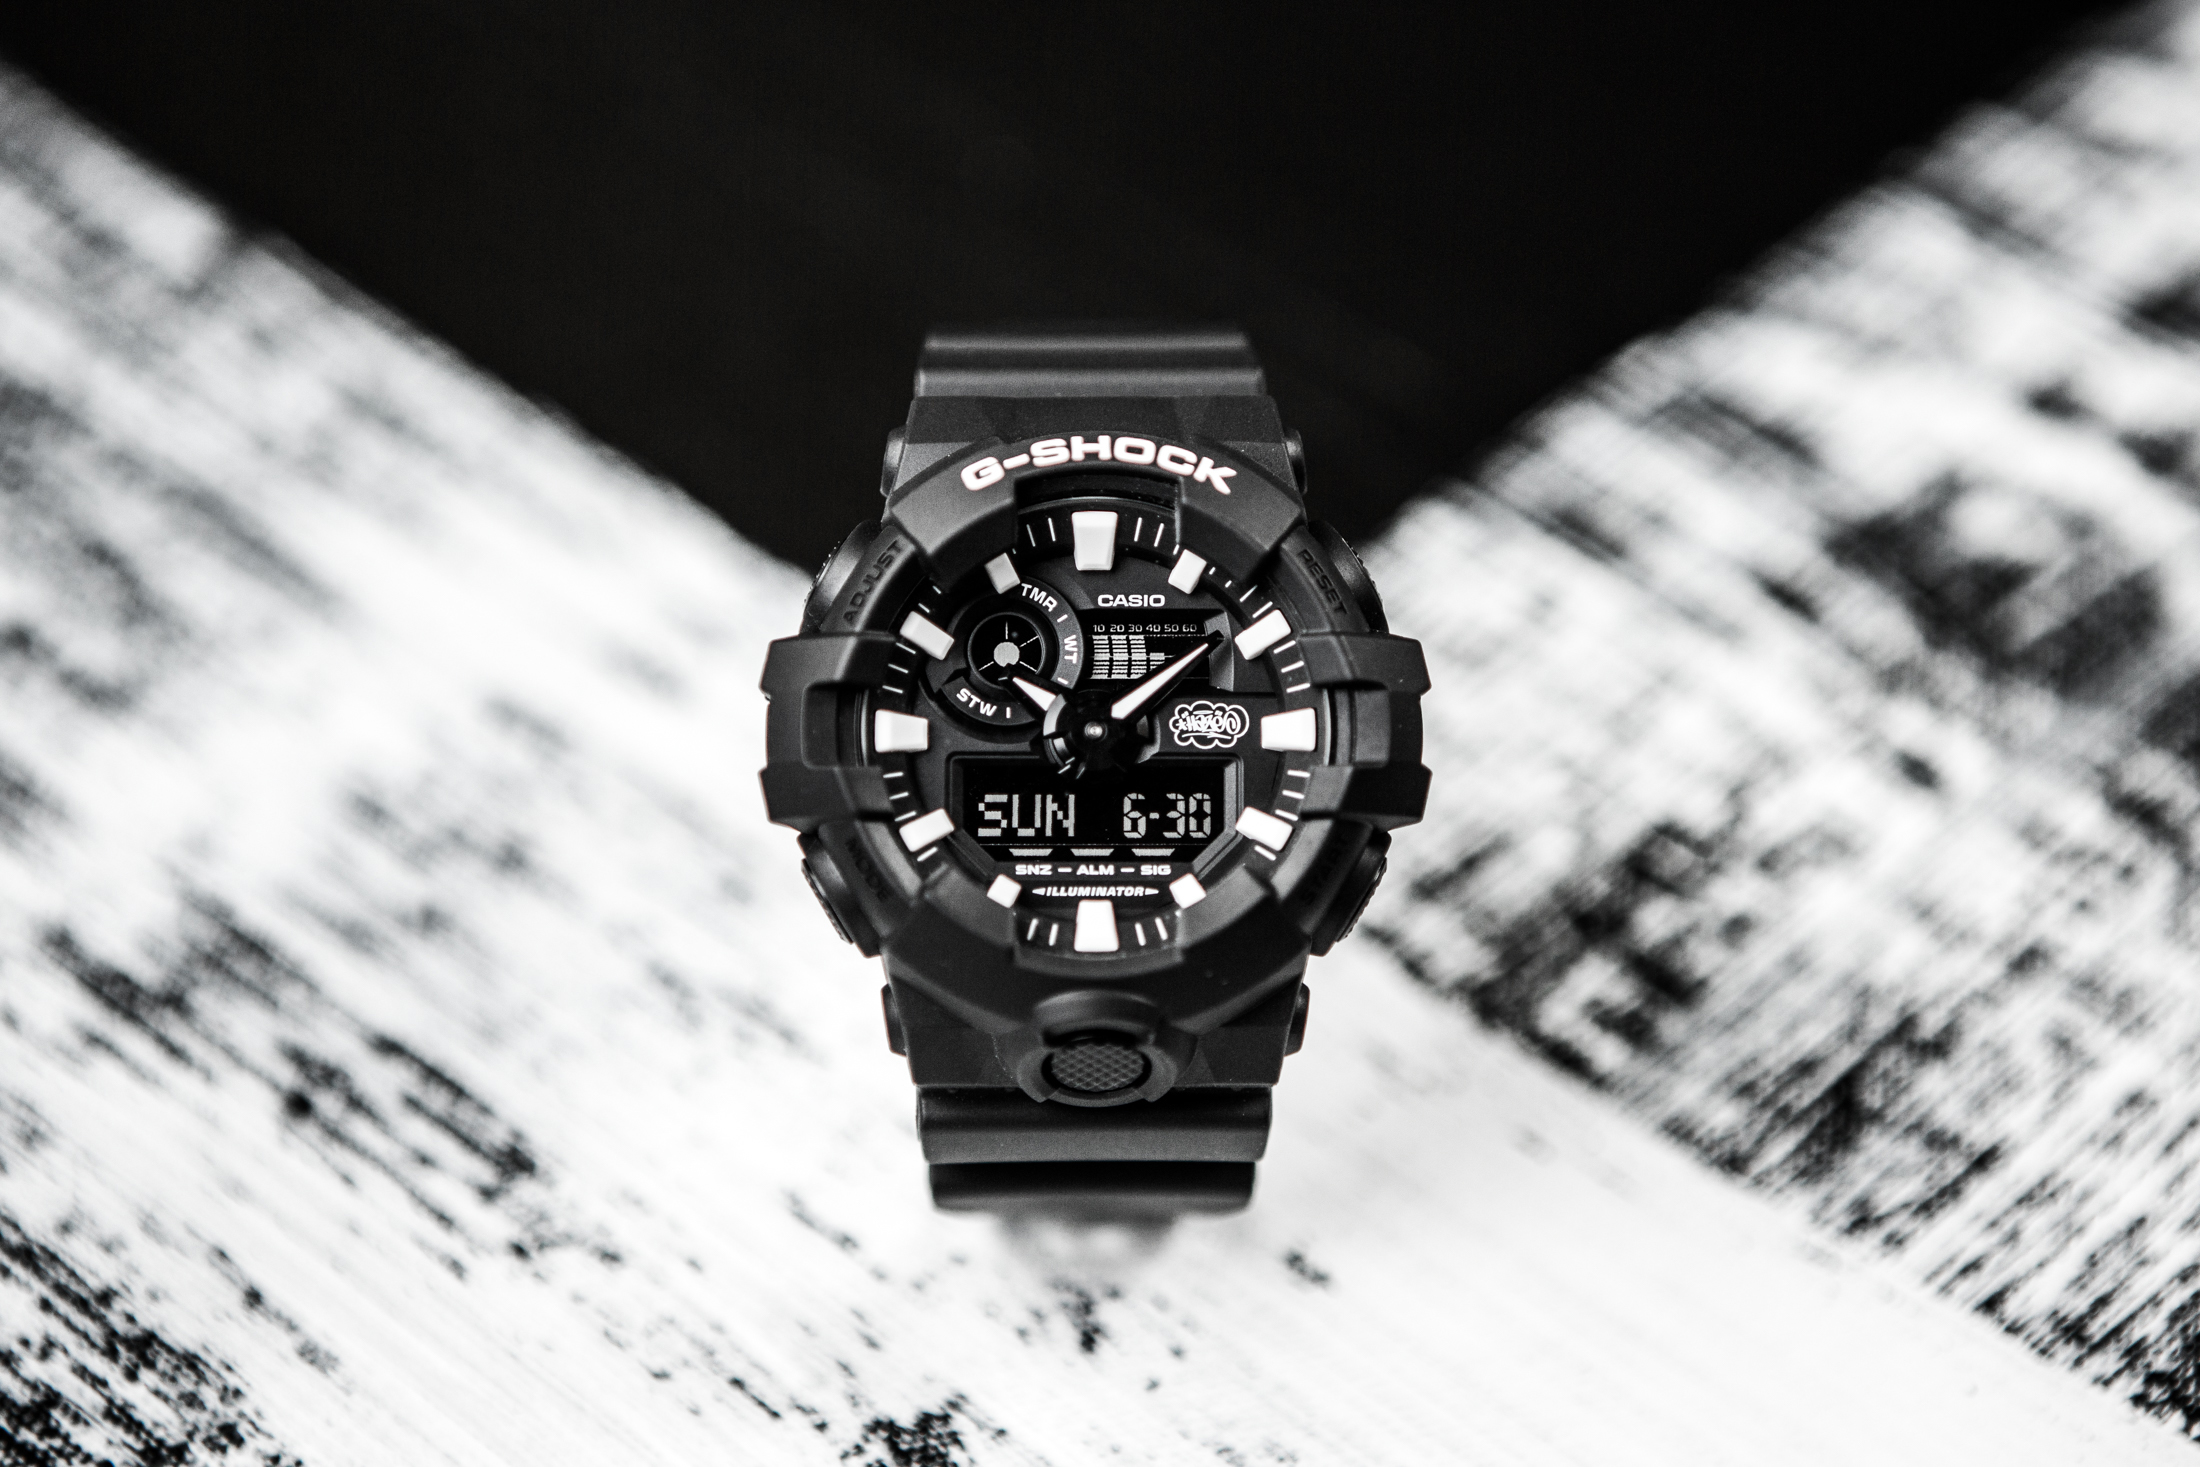 [Official] G-Shock GA-700EH-1A x Eric Haze Limited for 35th Anniversary